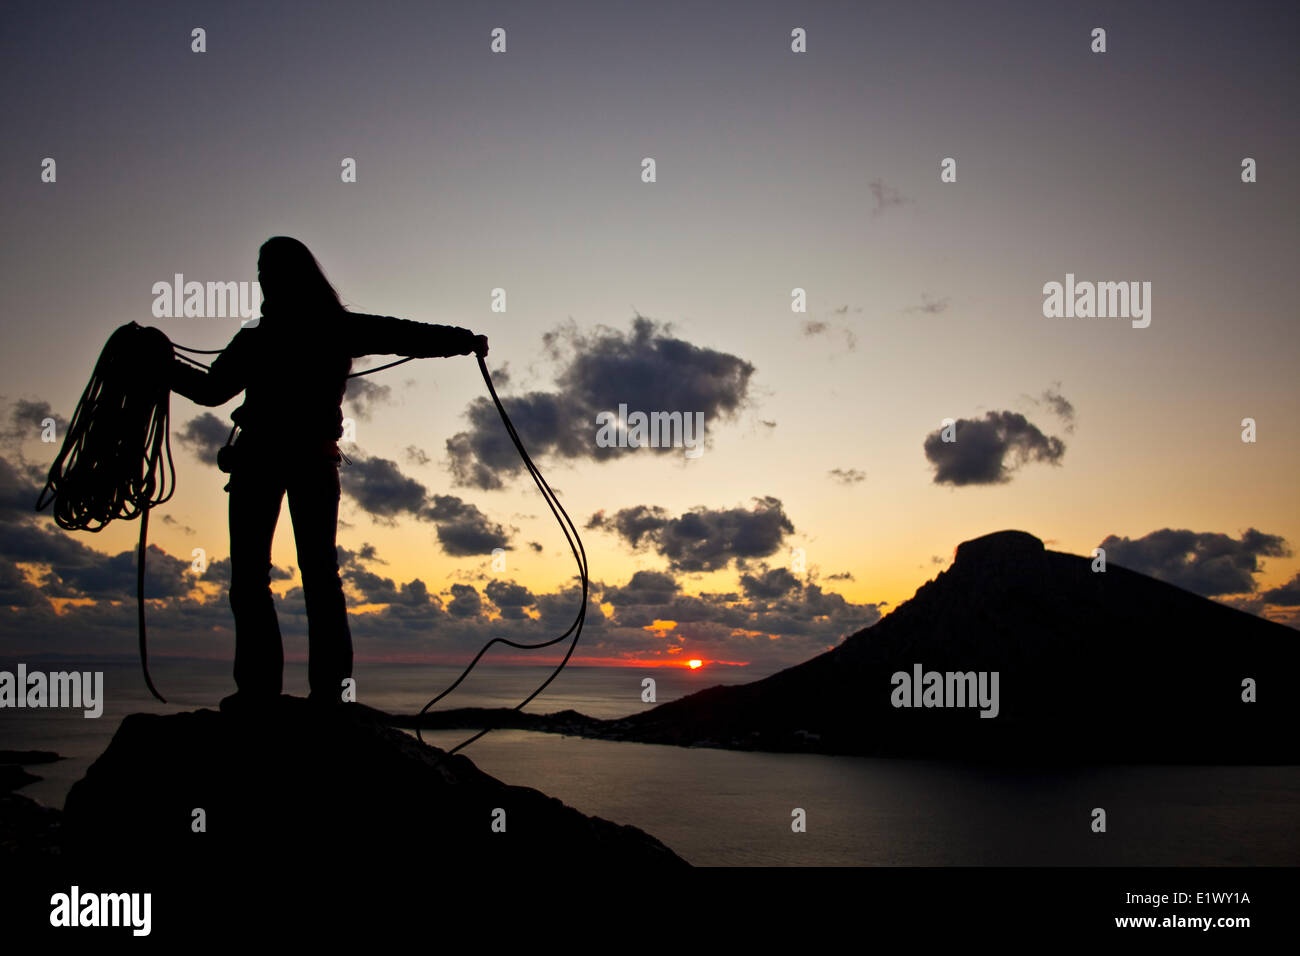 A young woman coiling the rope after a day of climbing in Kalymnos, Greece - Stock Image